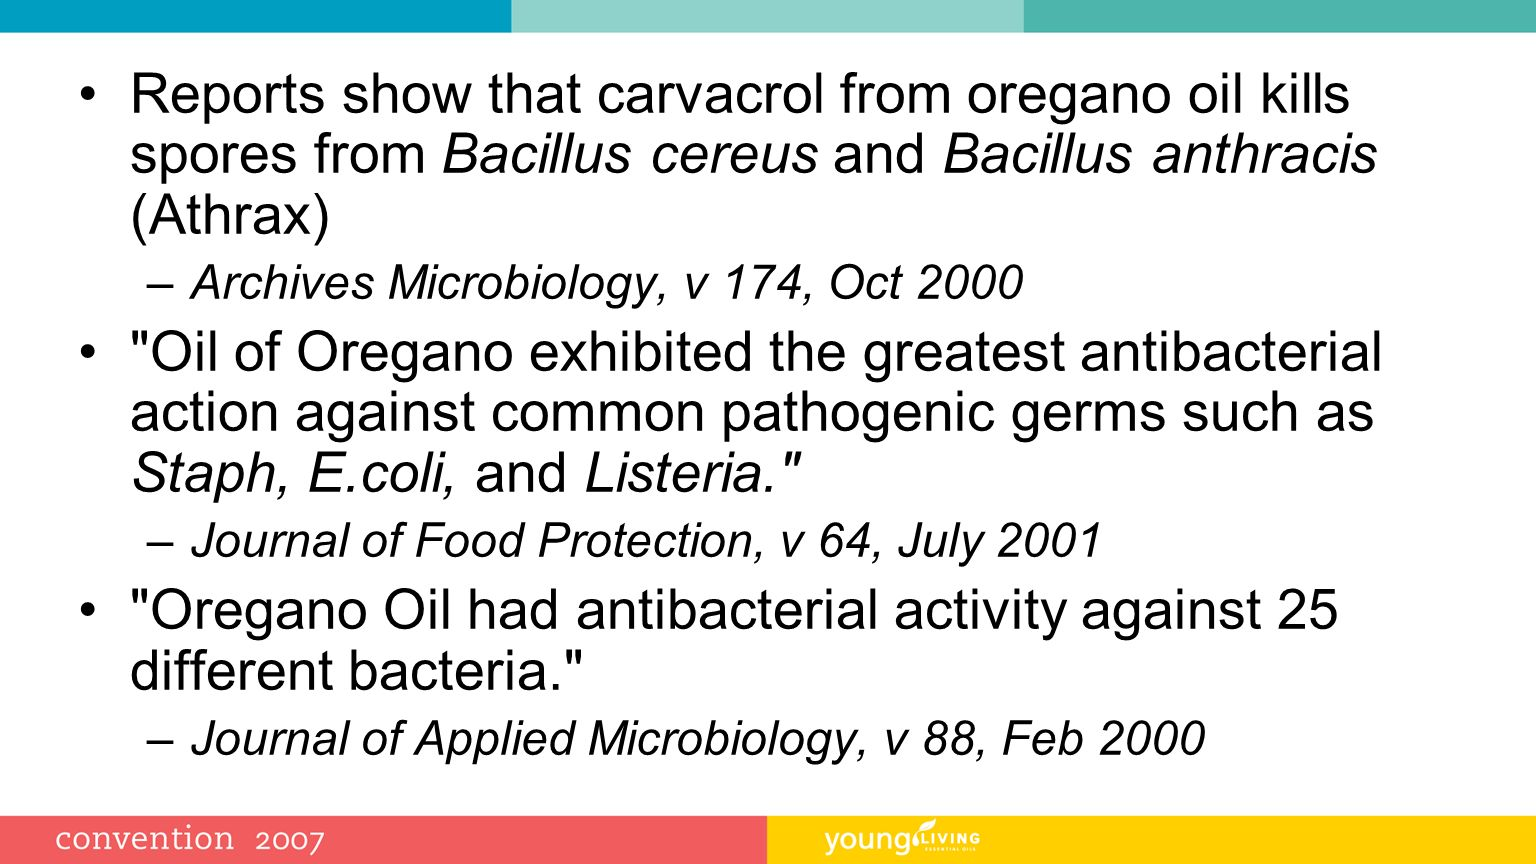 Reports show that carvacrol from oregano oil kills spores from Bacillus cereus and Bacillus anthracis (Athrax)